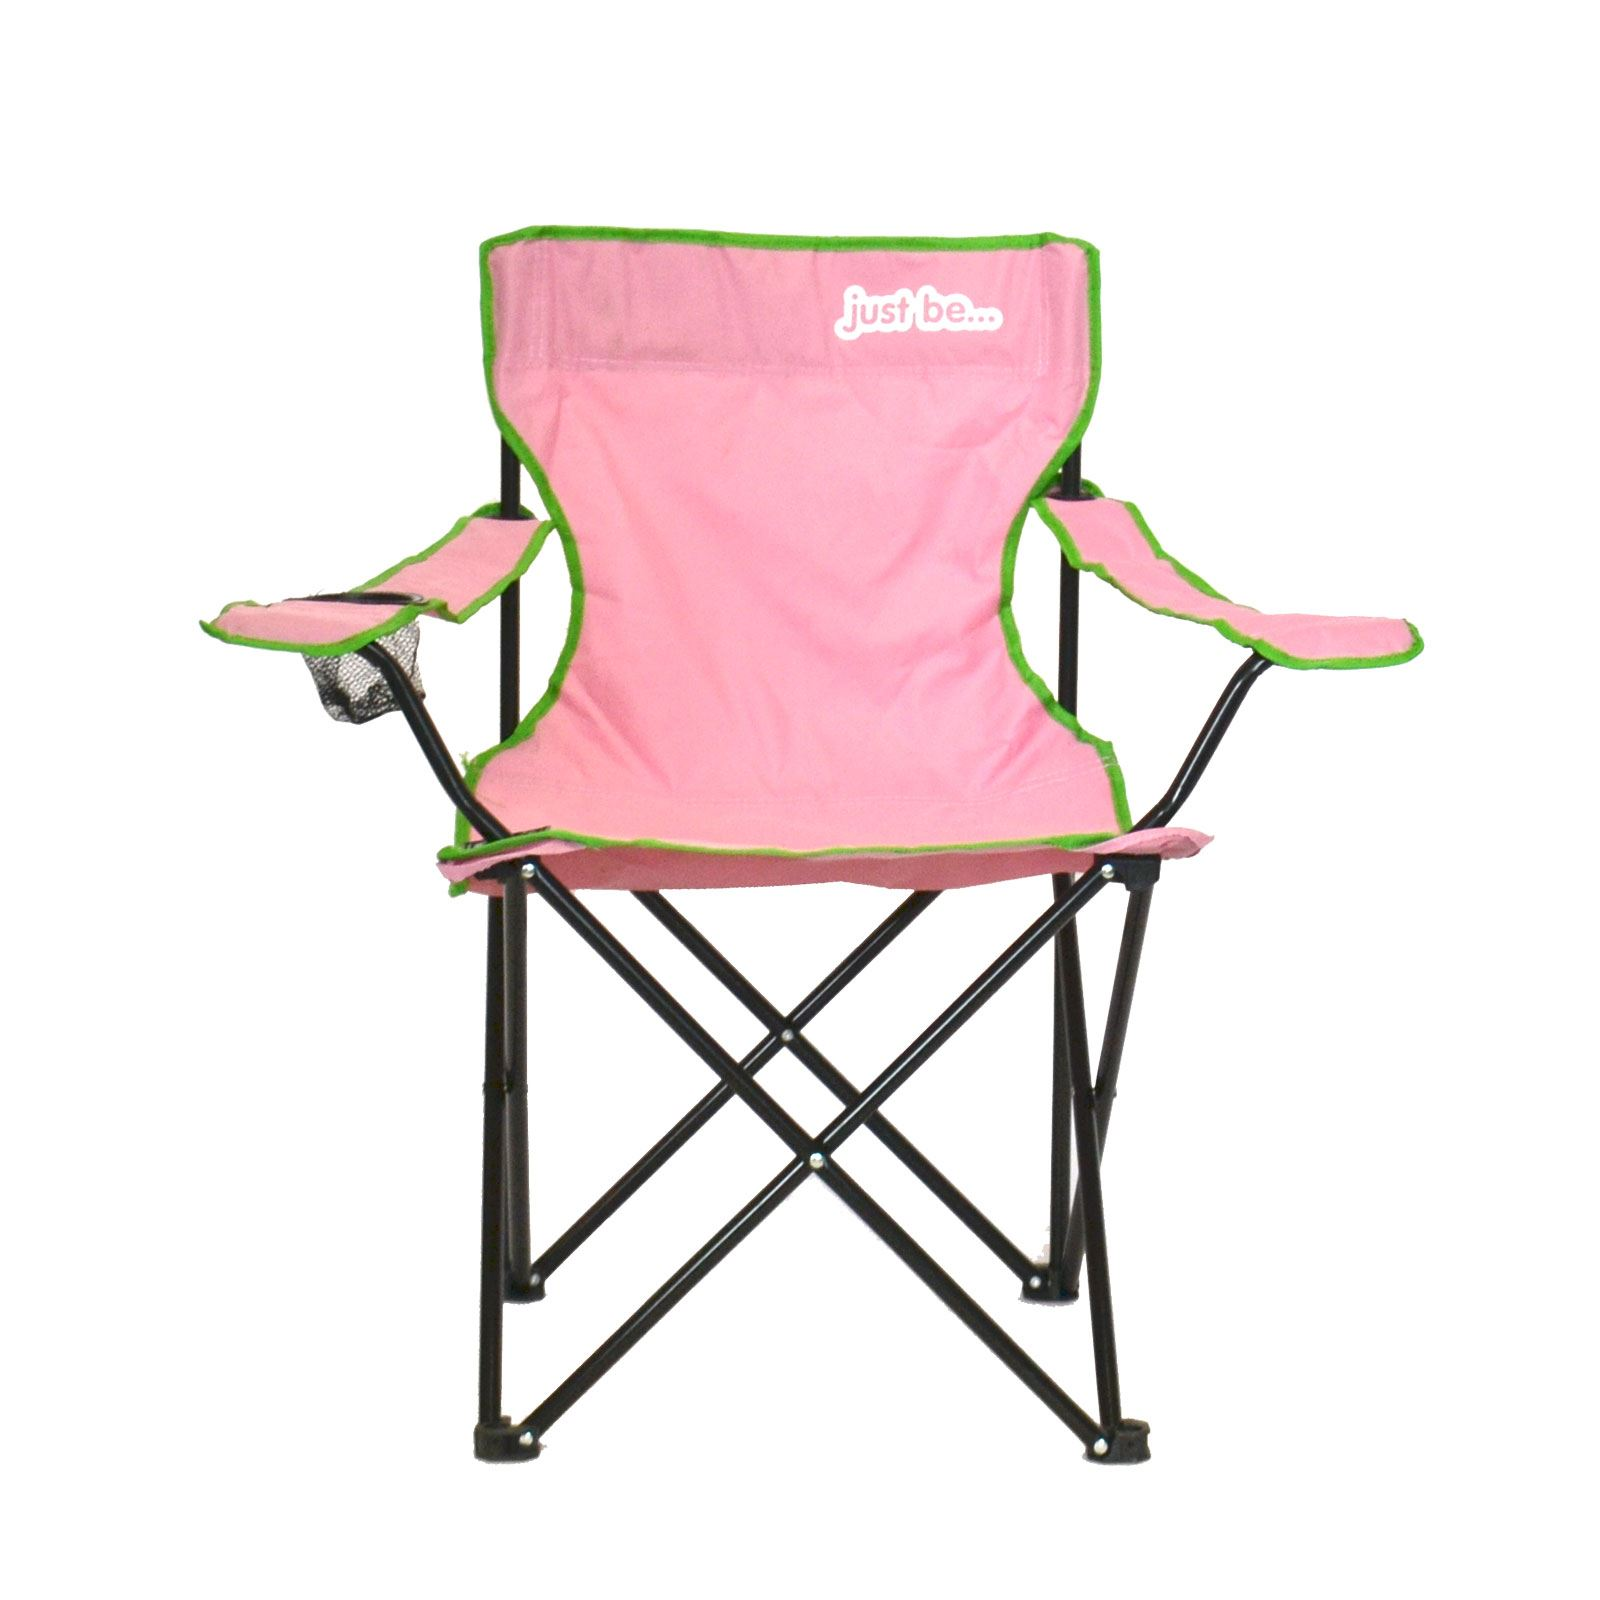 fishing chair amazon country cottage sofas and chairs folding camping festival garden foldable fold up